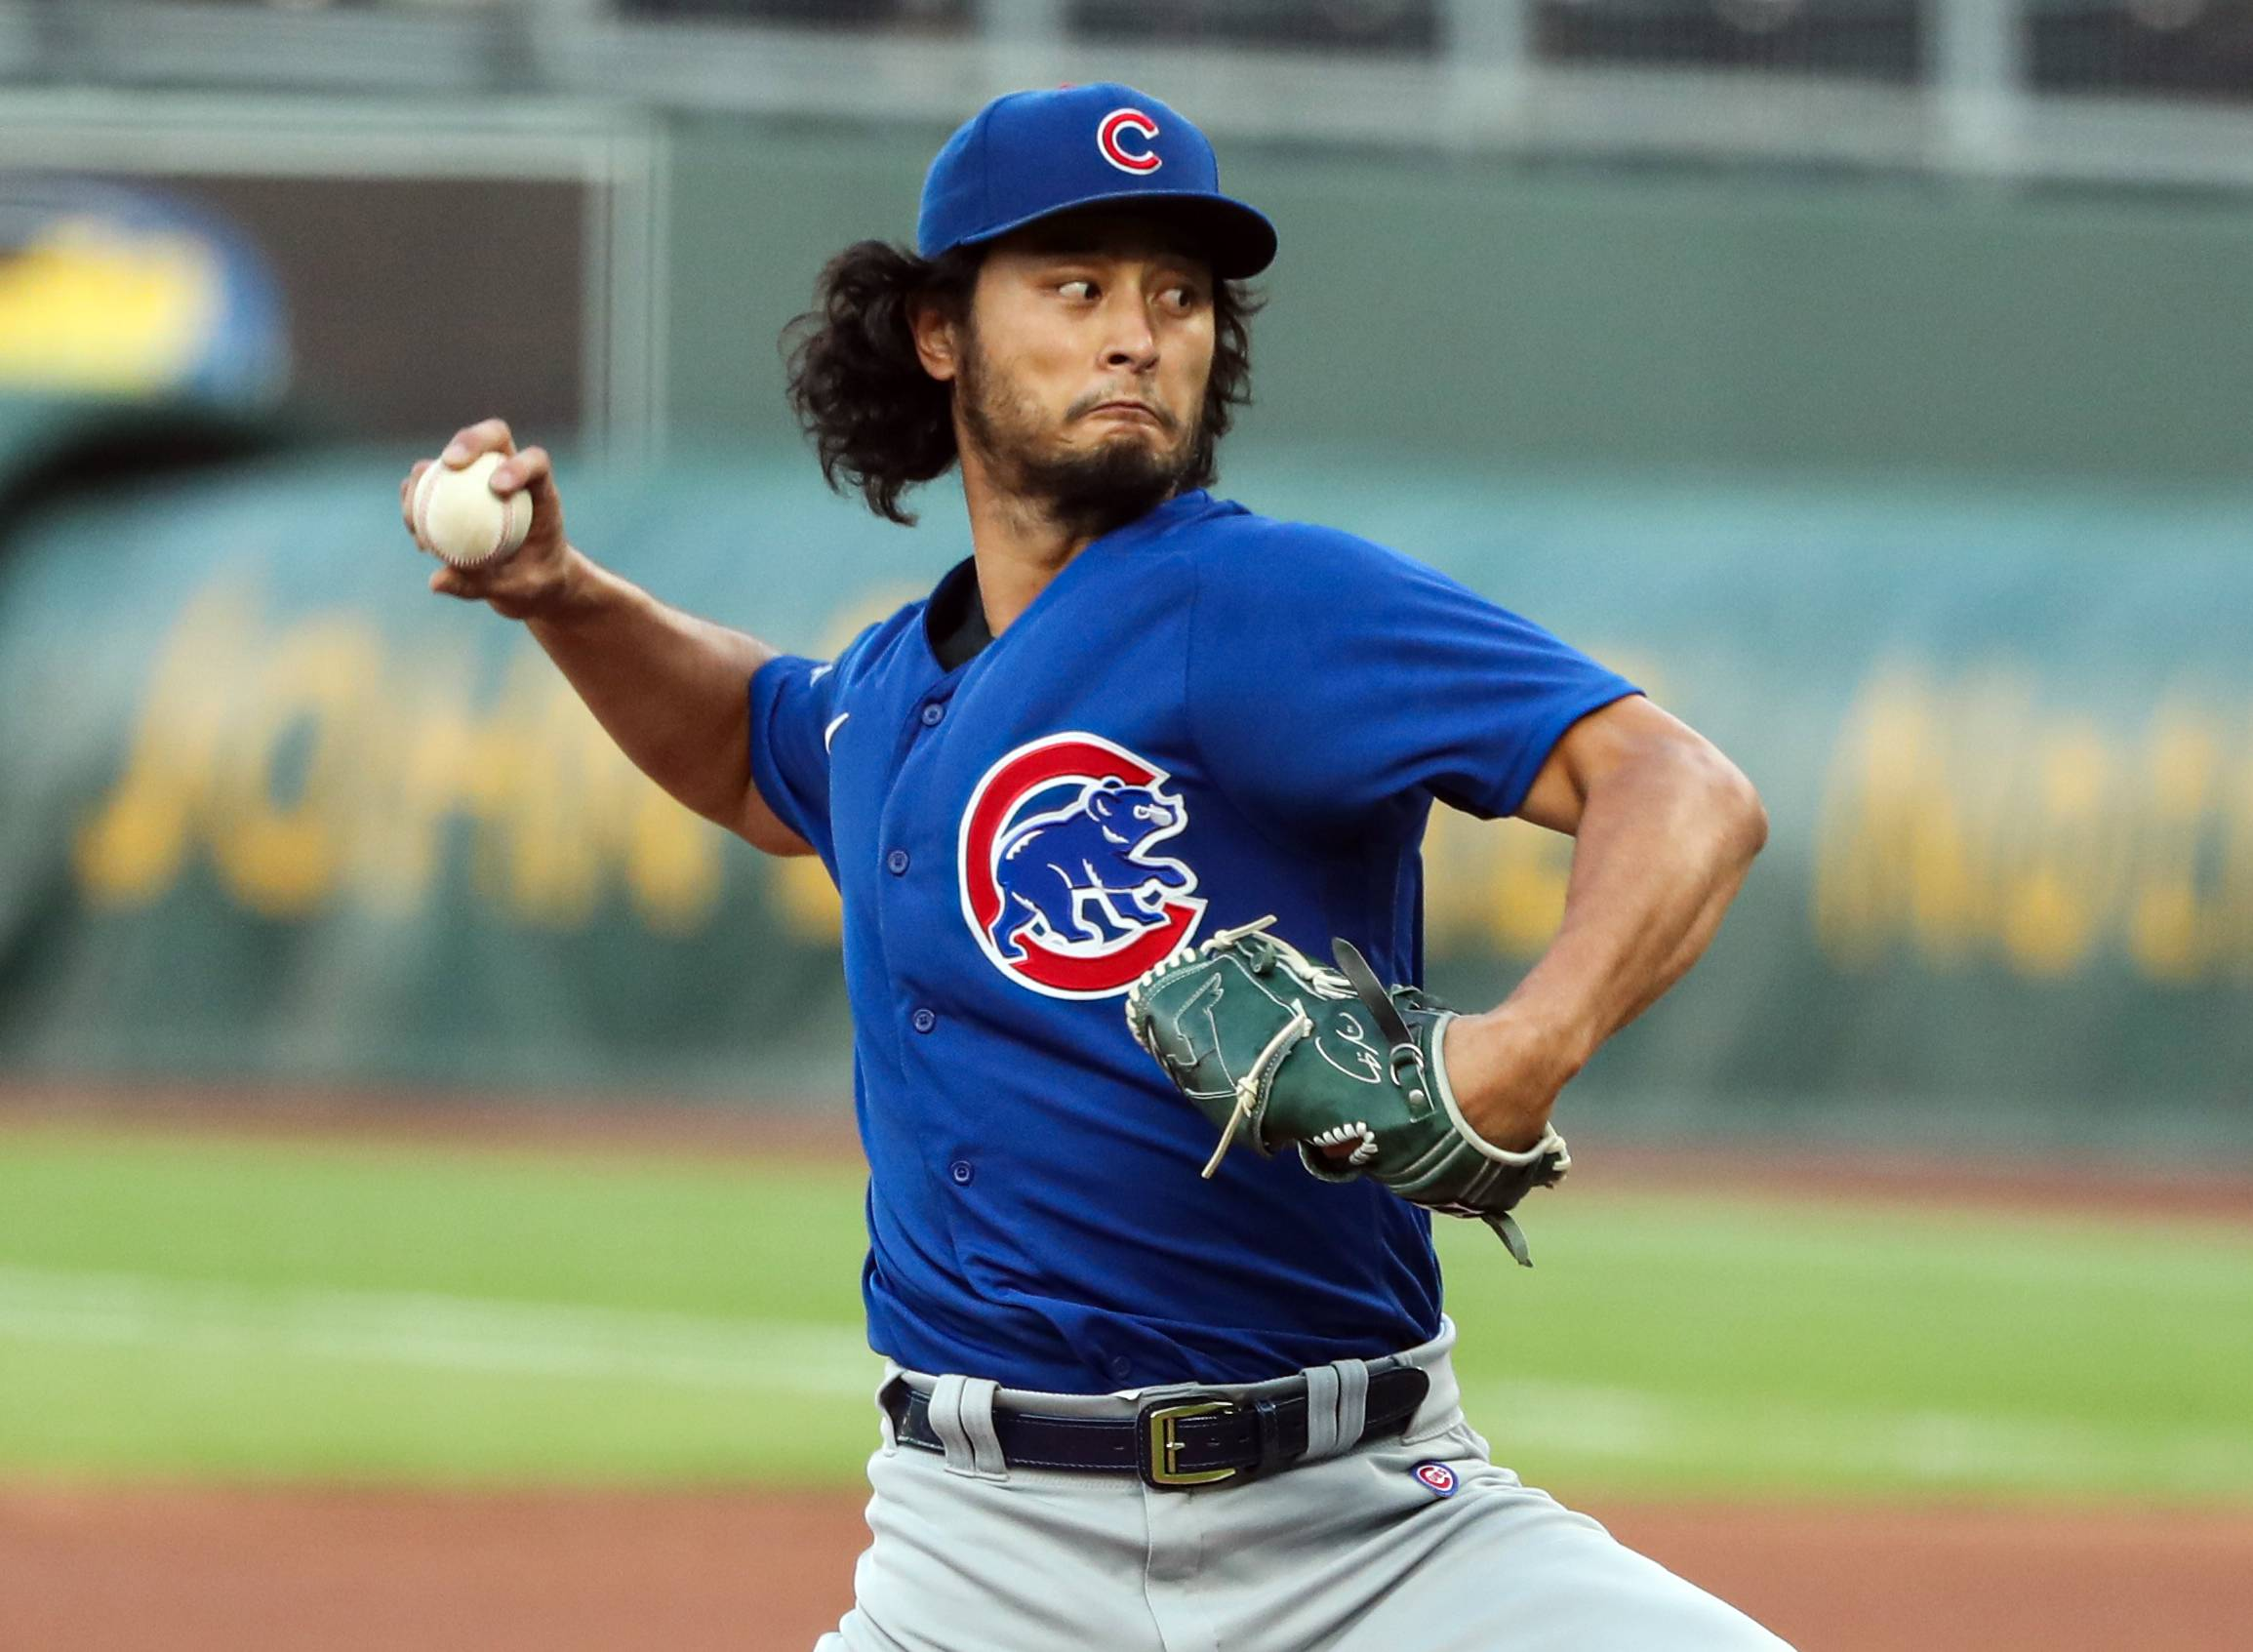 Yu Darvish pitches against the Royals on Aug. 5 in Kansas City, Missouri. | USA TODAY / VIA REUTERS